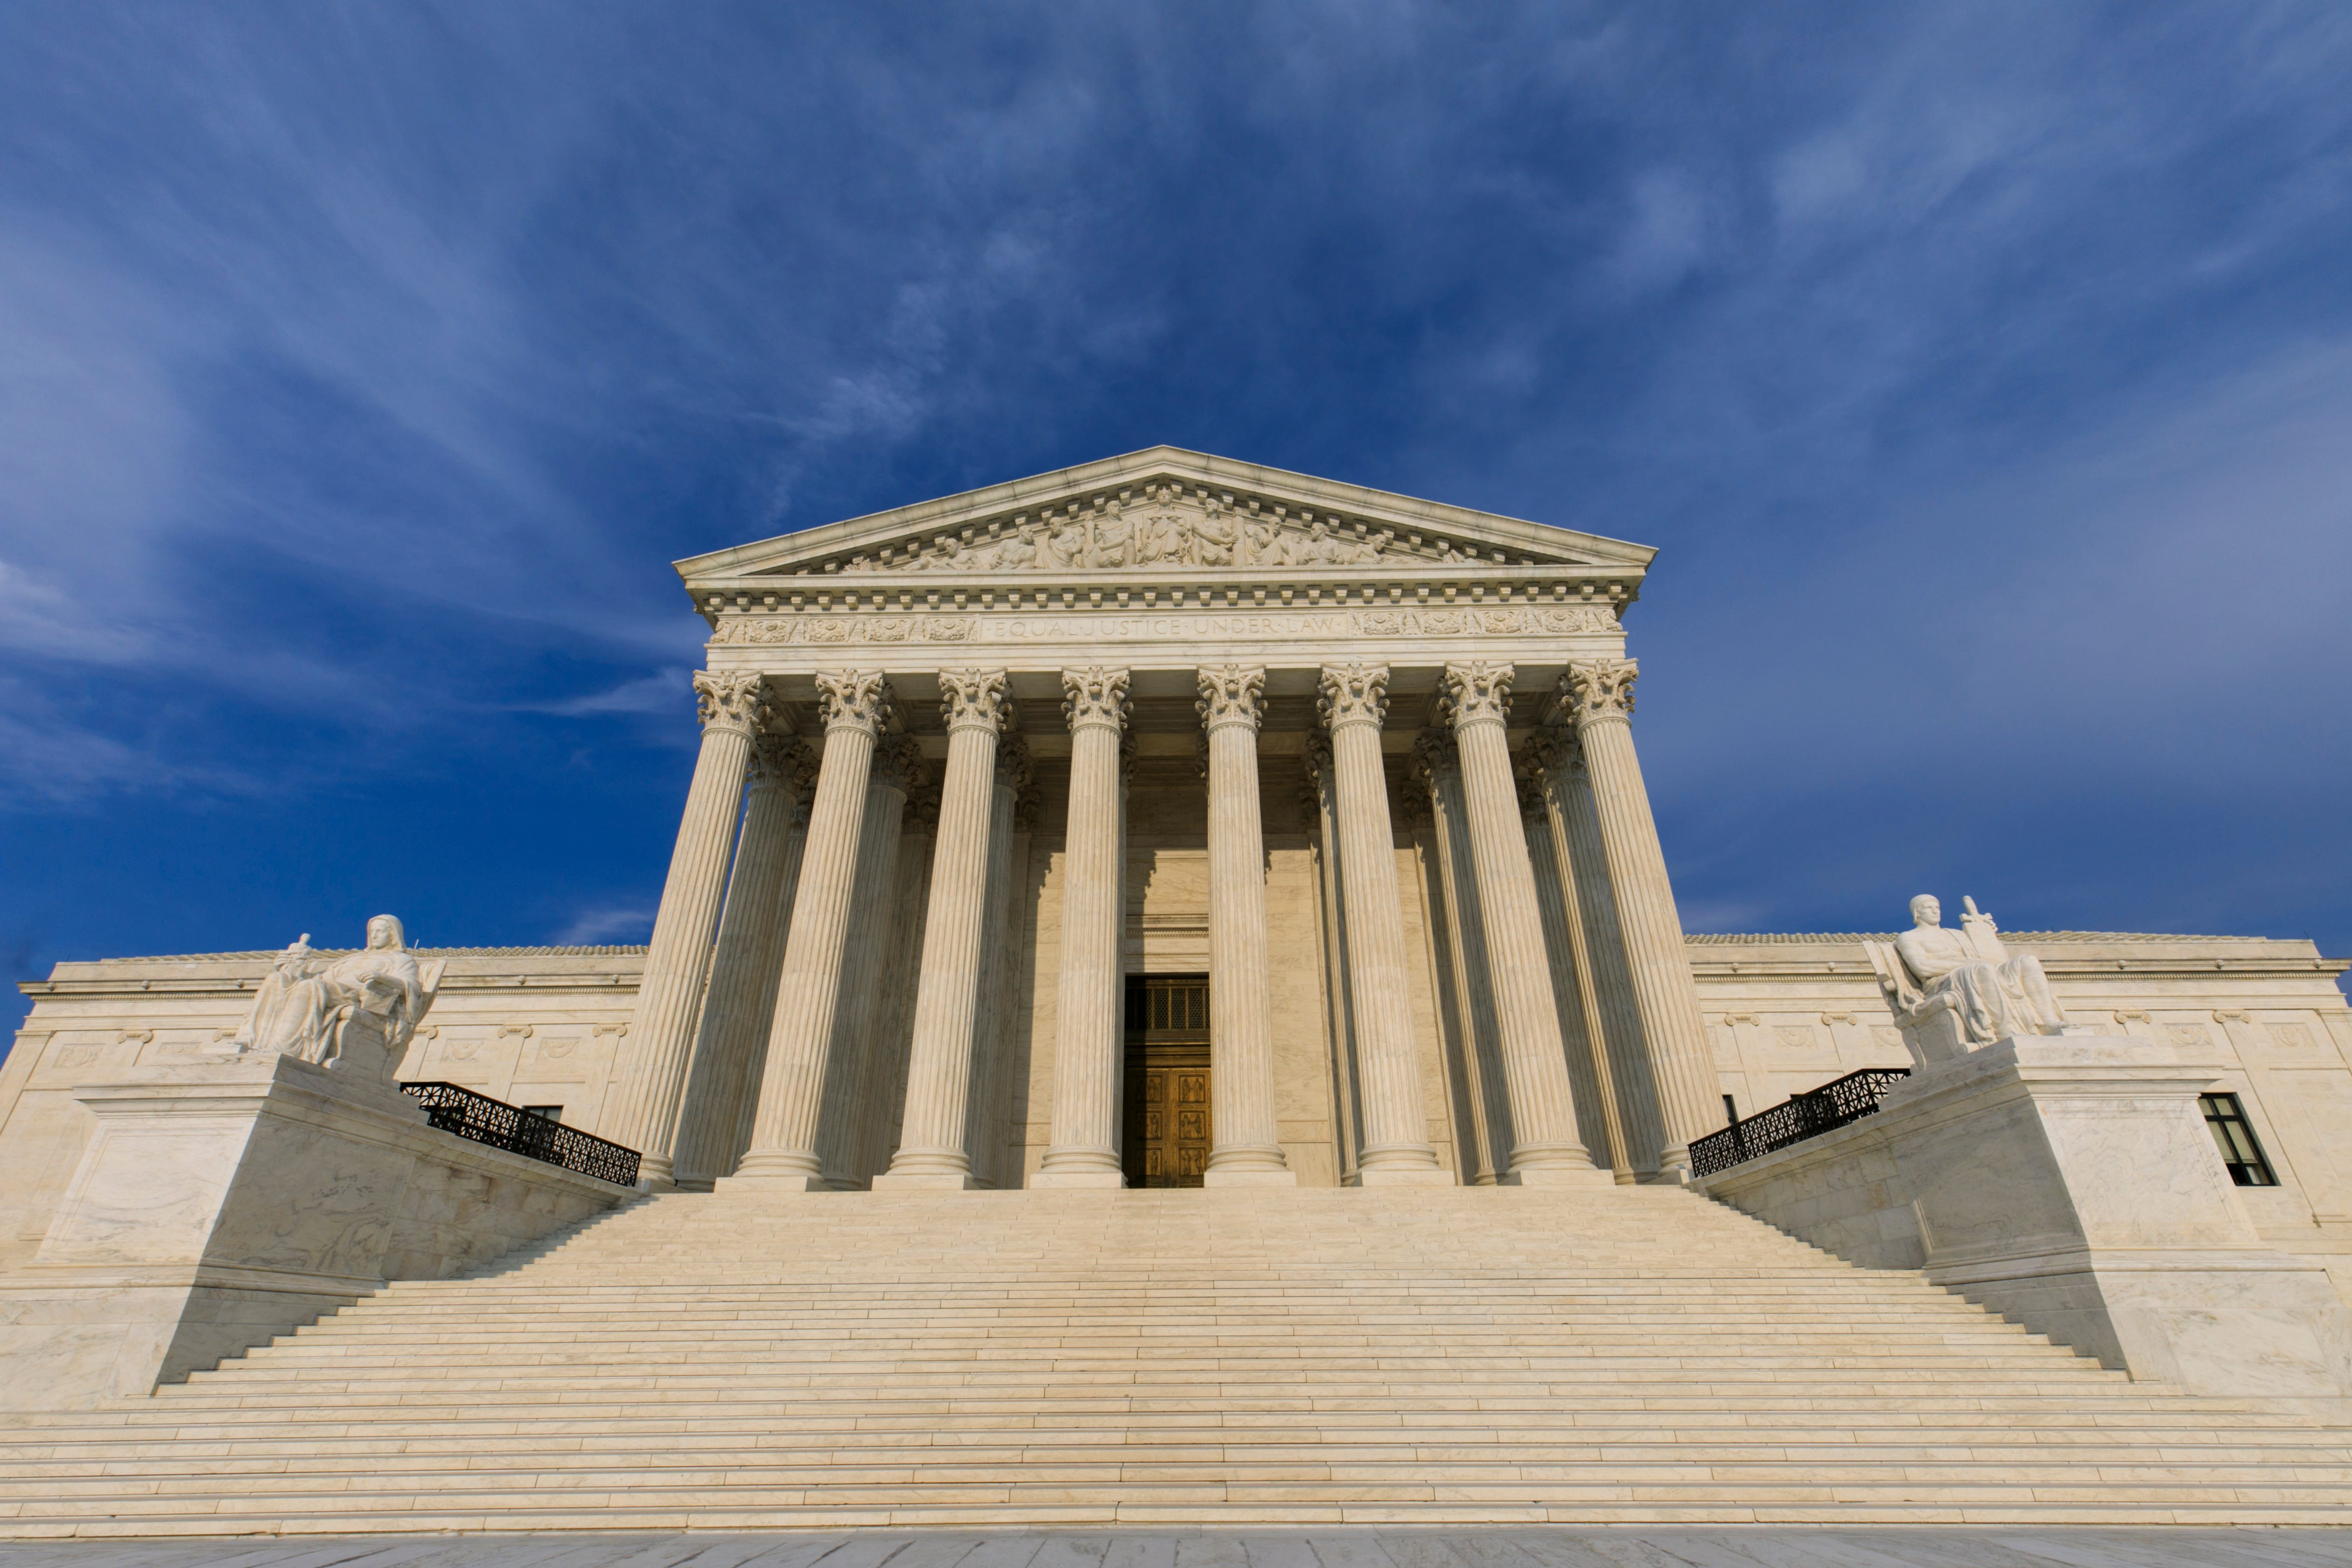 Supreme Court to hear case on New York City's restrictions on gun owners under Second Amendment